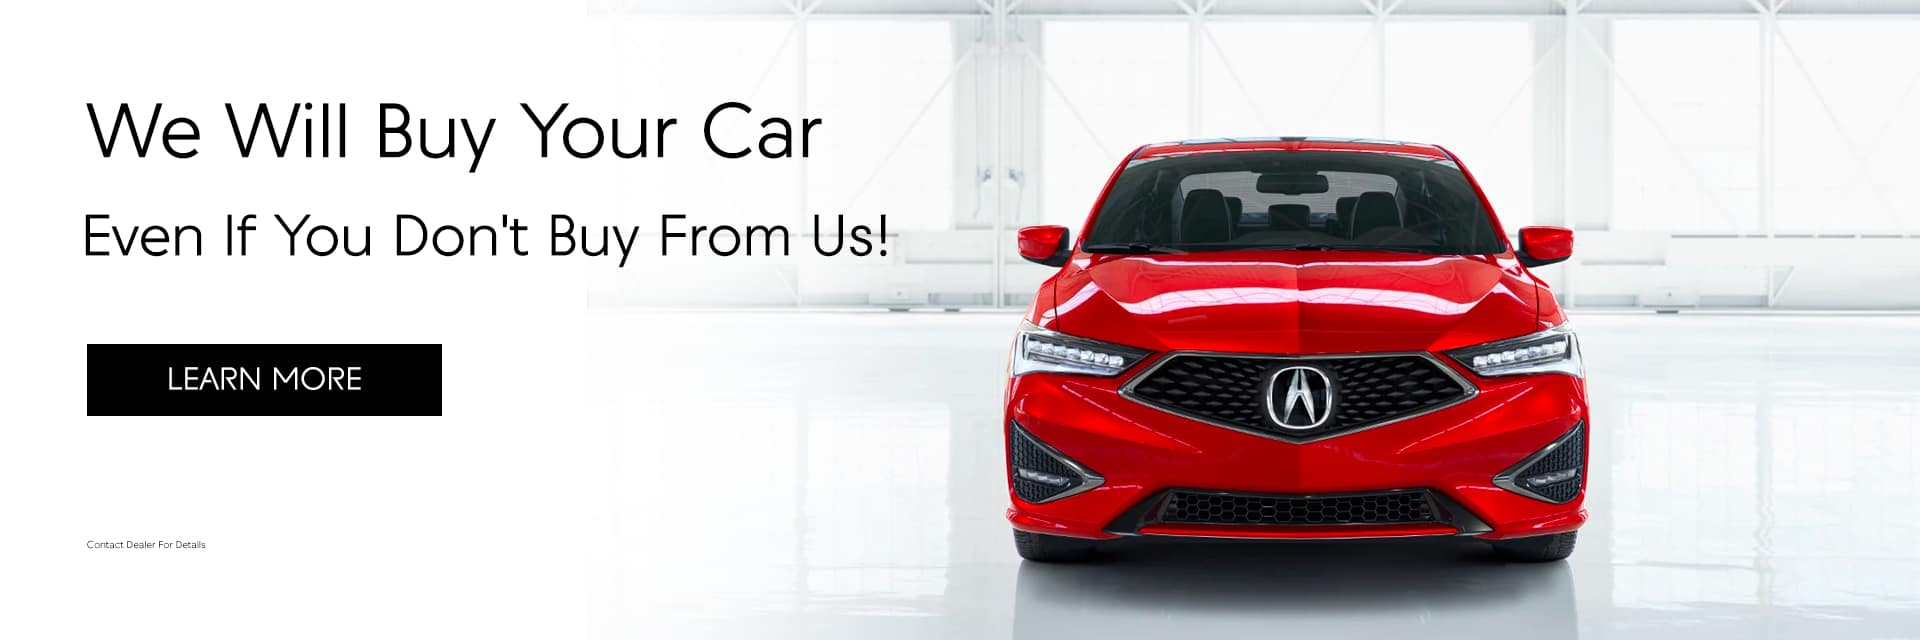 We Will Buy Your Car. Even If You Don't Buy From Us!